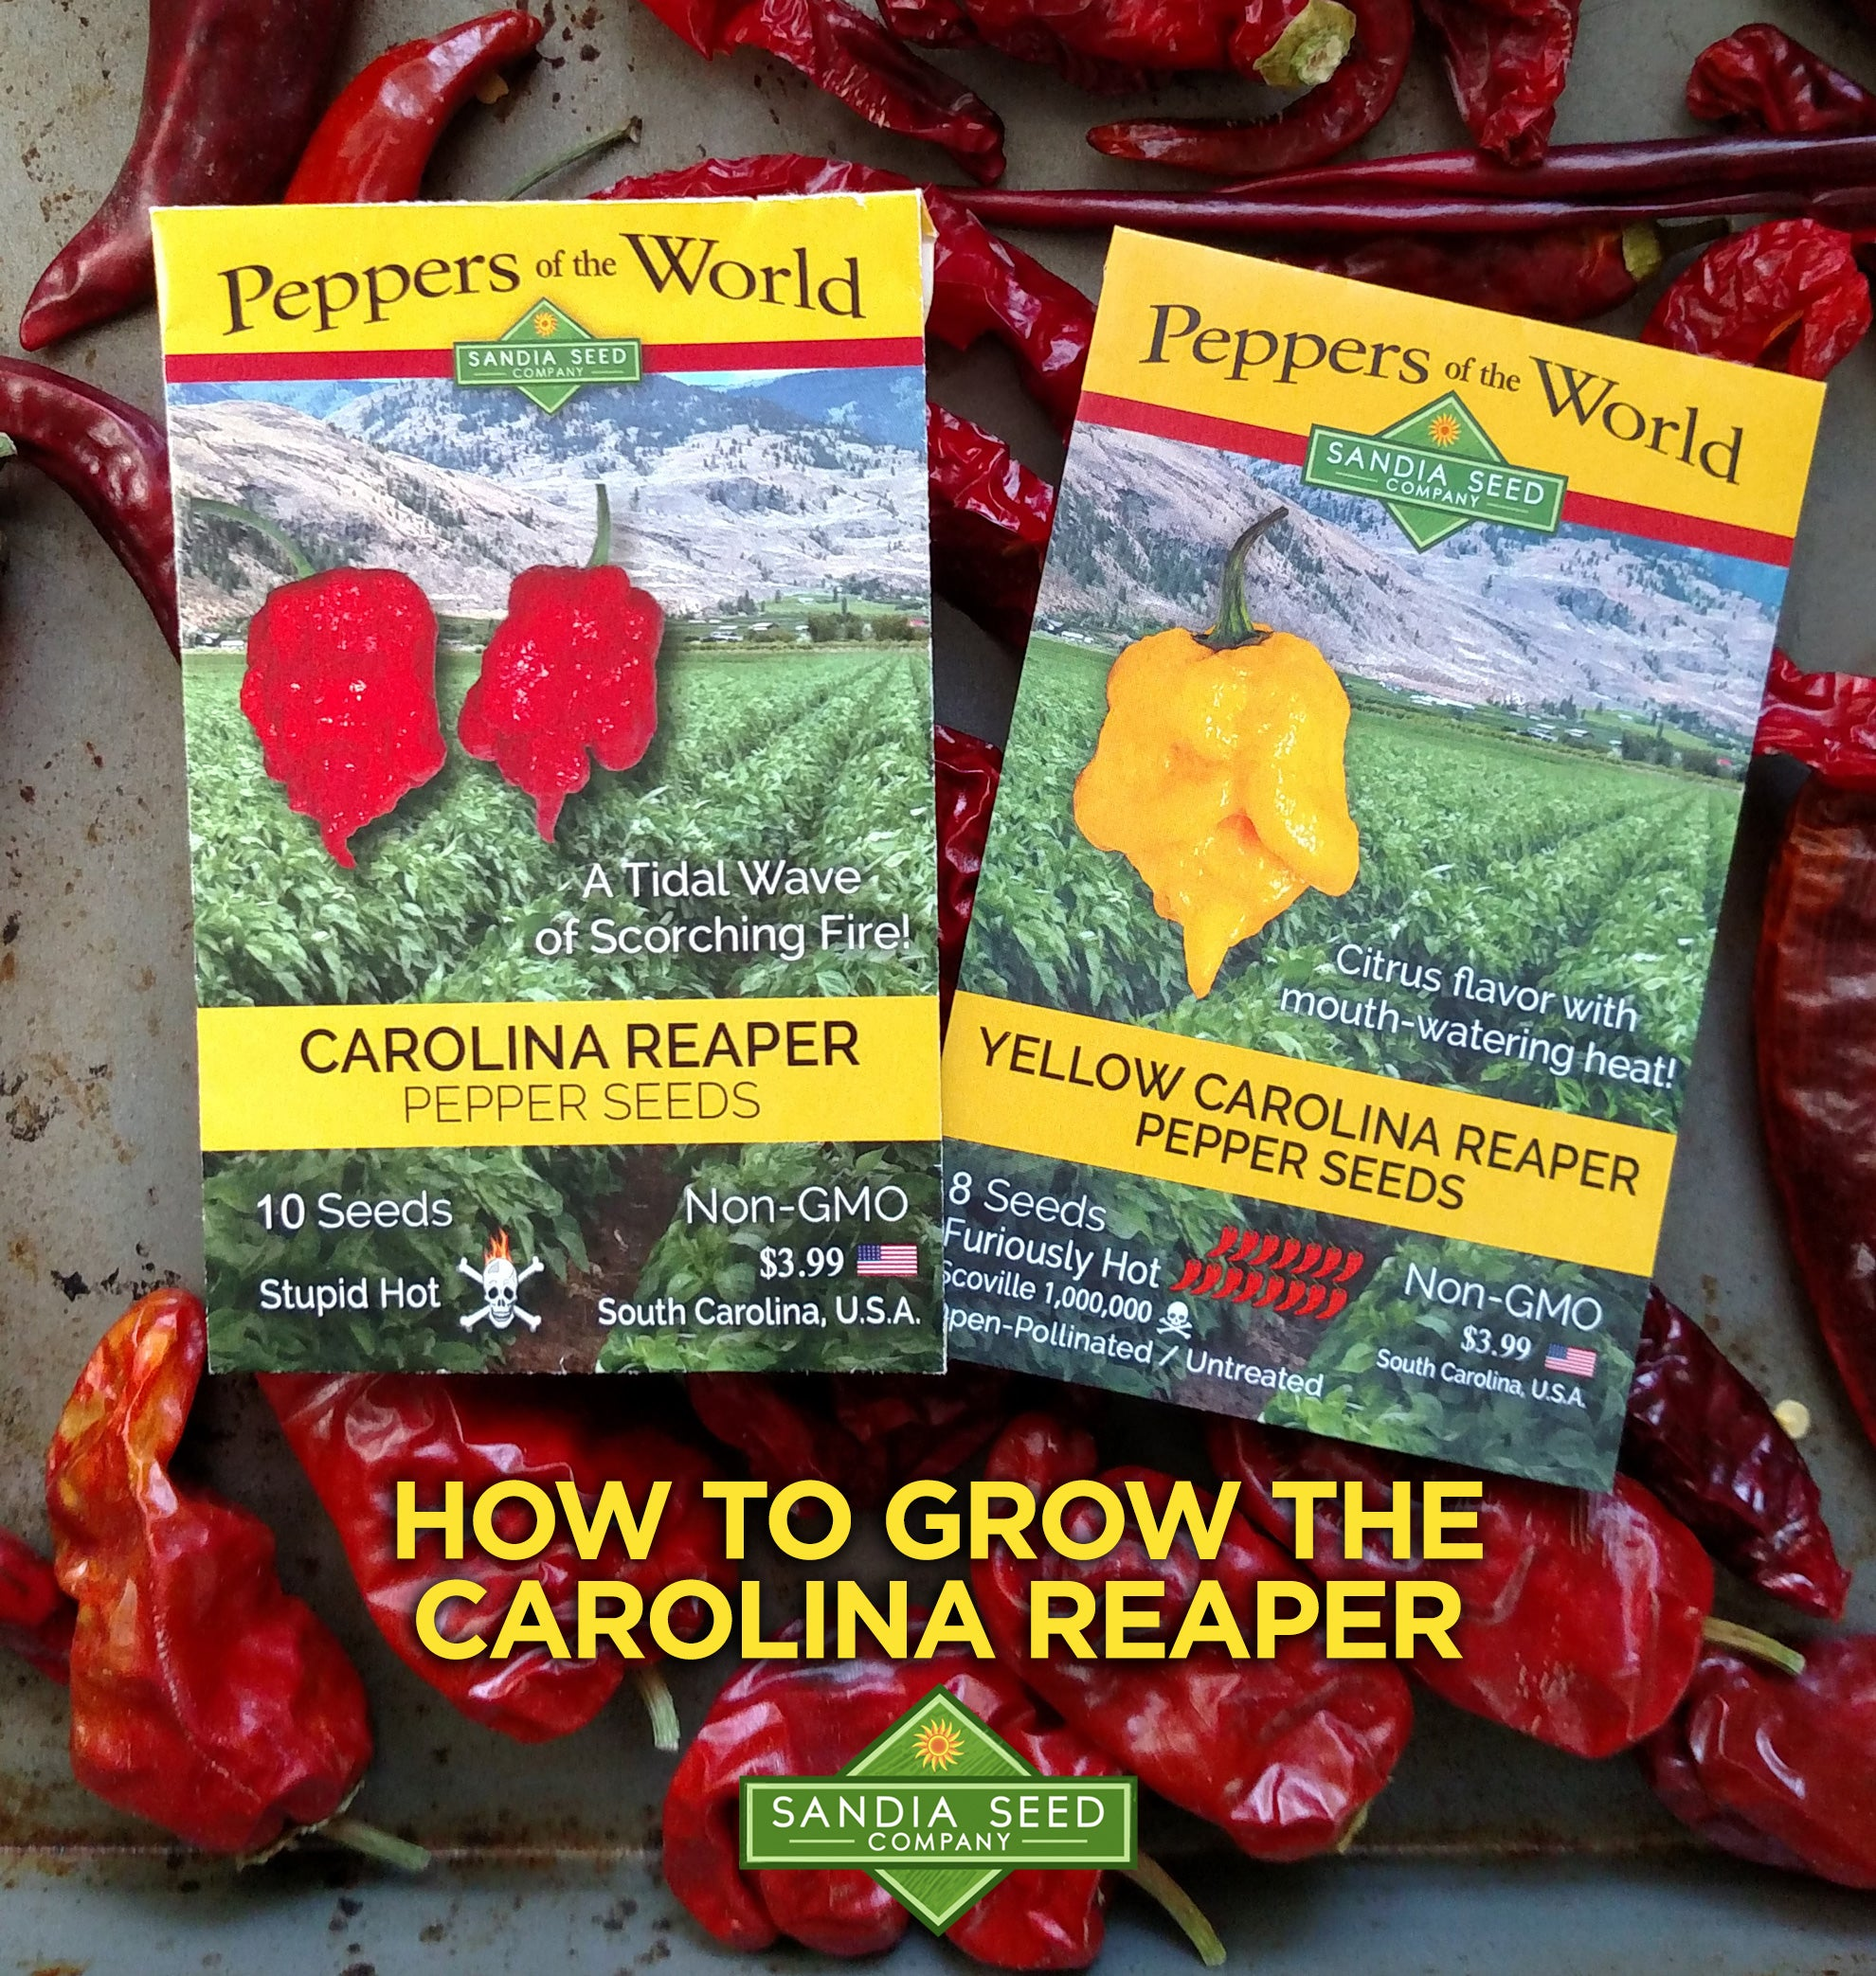 How to Grow Carolina Reaper